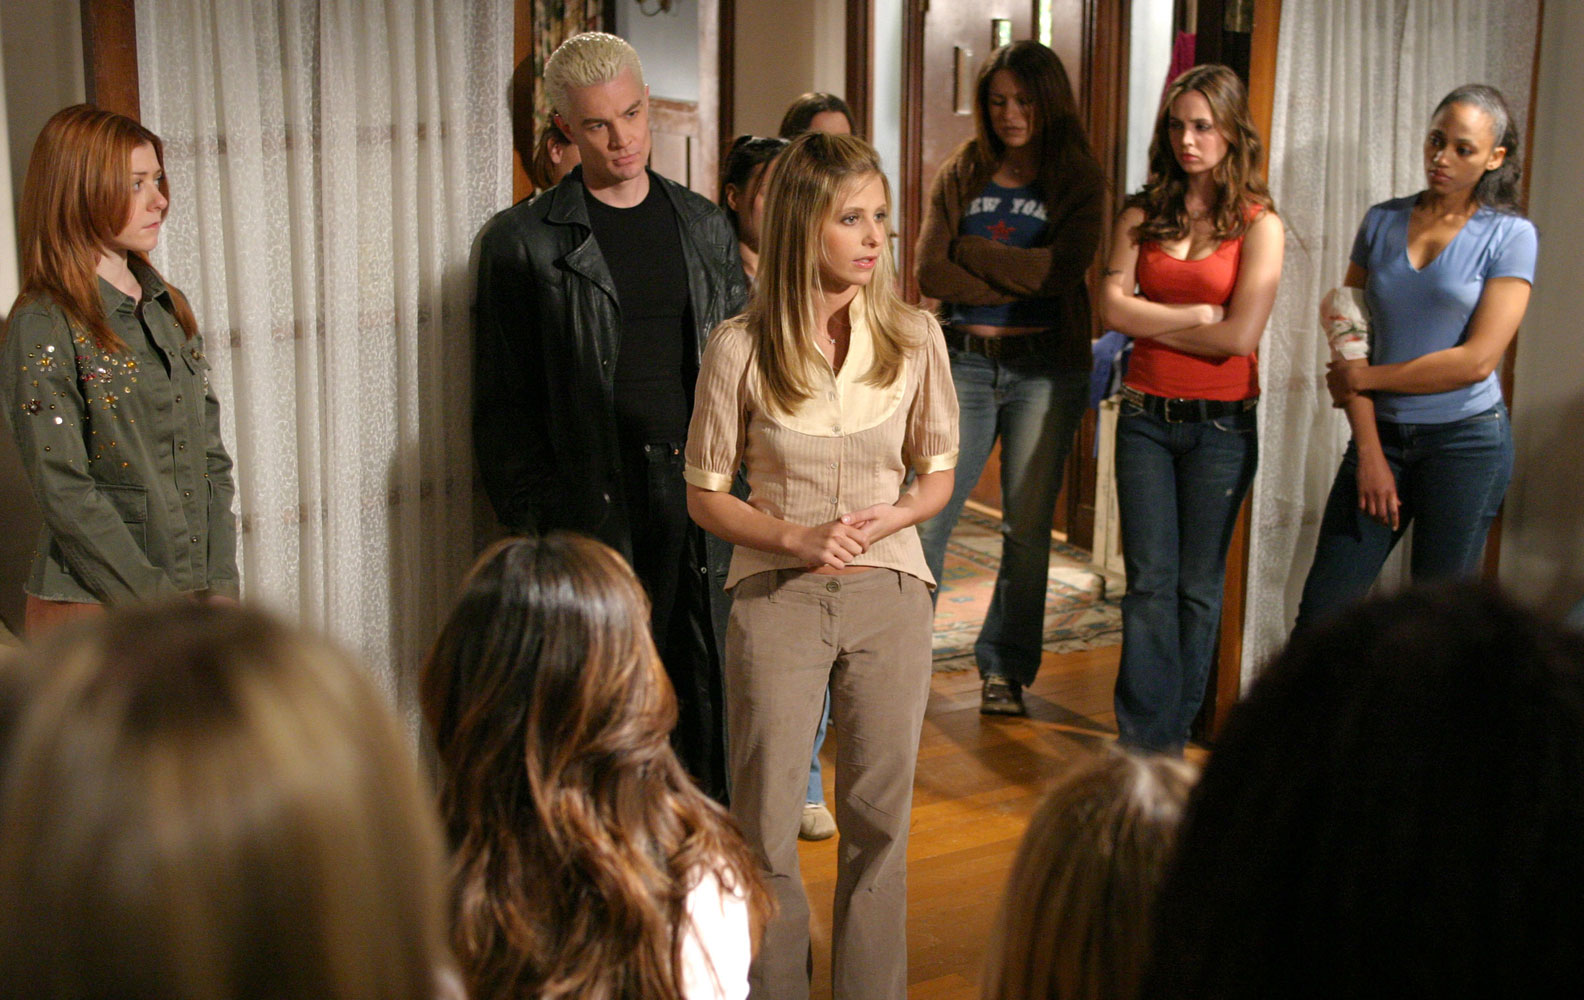 the life lessons in the tv show buffy the vampire slayer Watch buffy the vampire slayer - season 7, episode 1 - lessons: the re-opening of sunnydale high school feels just like old times for buffy as some undead students and faculty rise up.